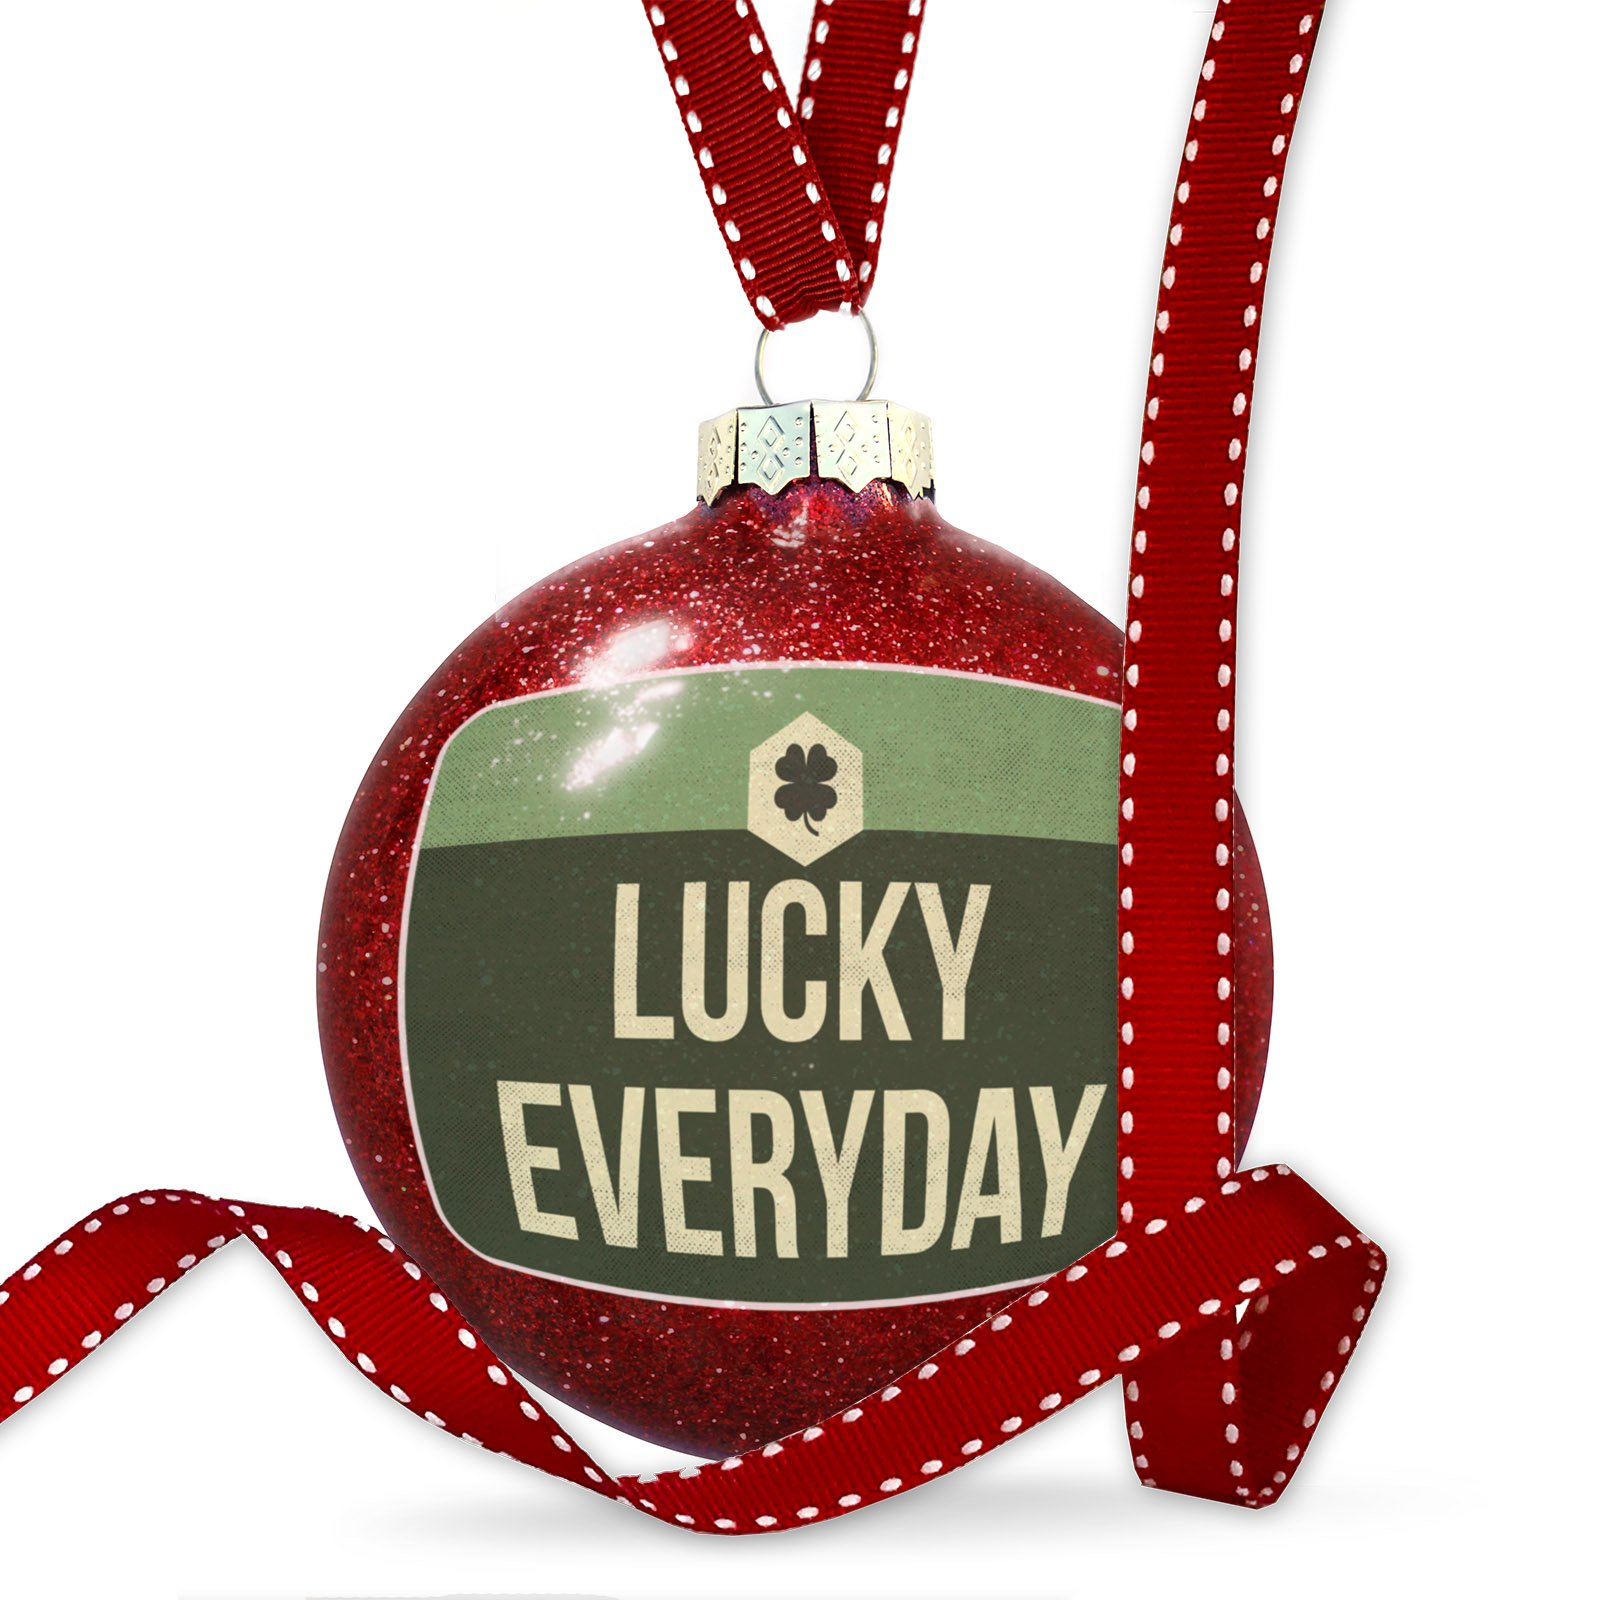 Christmas Decoration Lucky Everyday St. Patrick's Day Vintage Four Leaf Clover Ornament by NEONBLOND